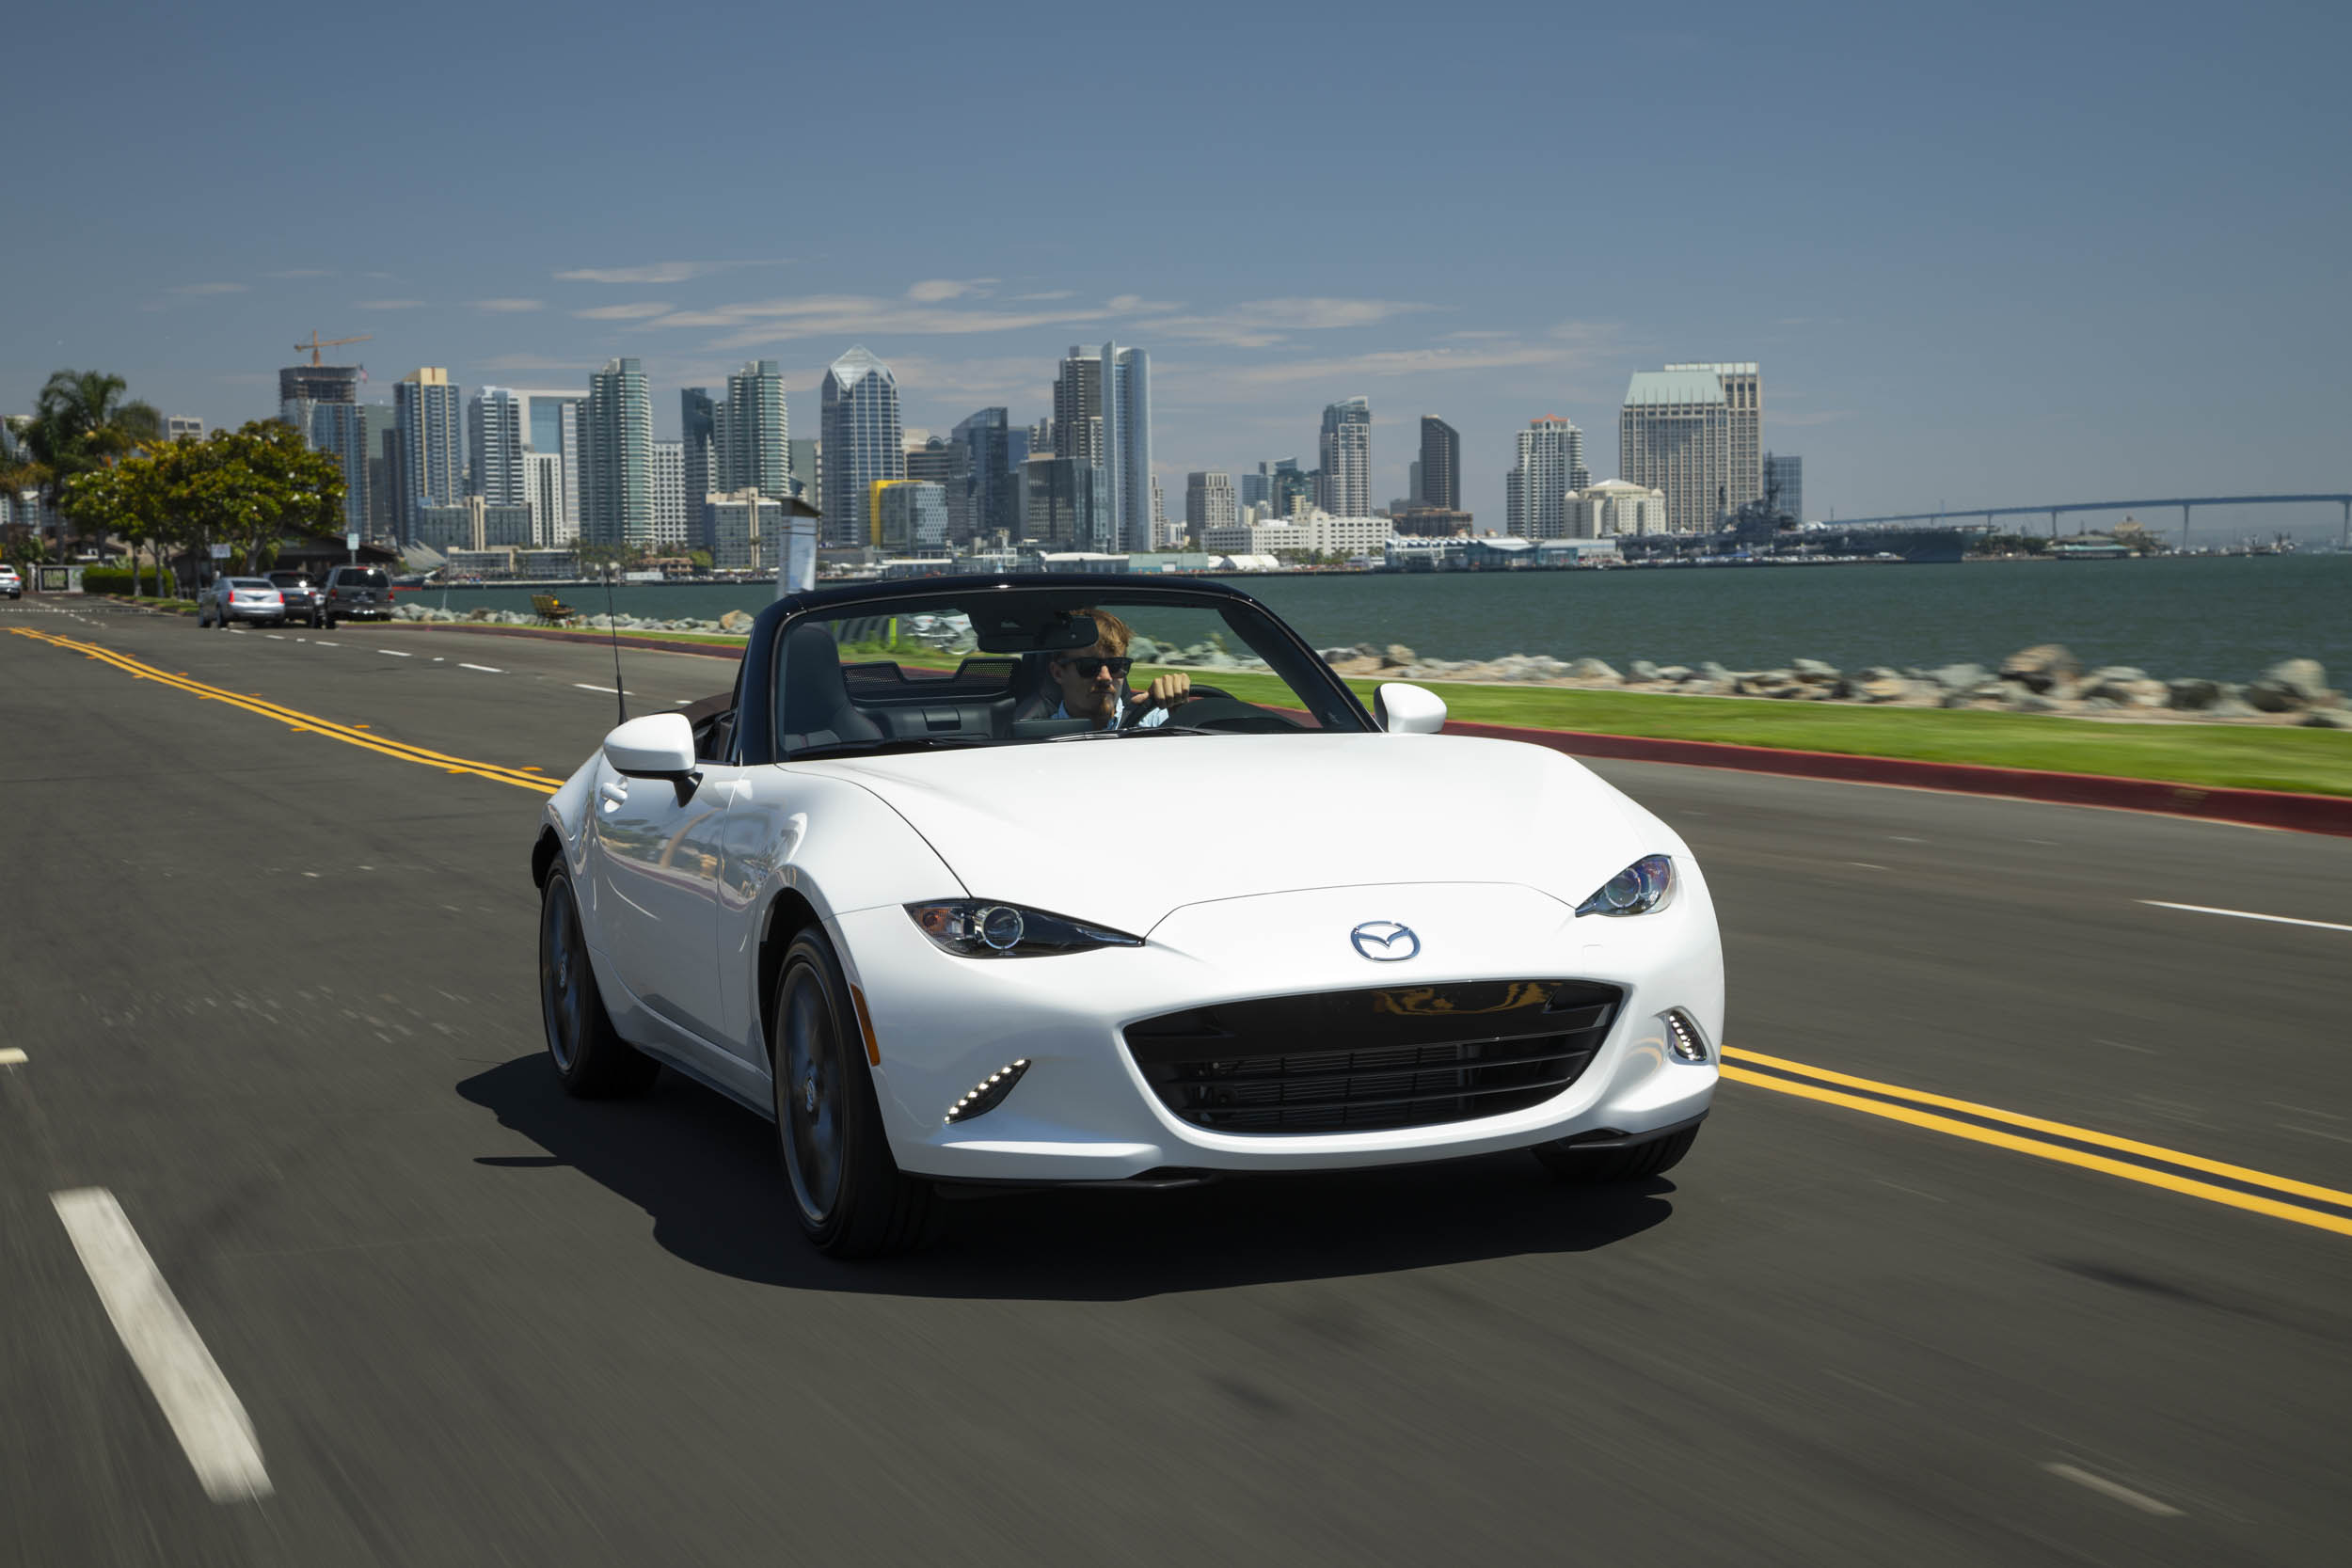 driving with the top down 2019 Mazda MX-5 Miata Roadster